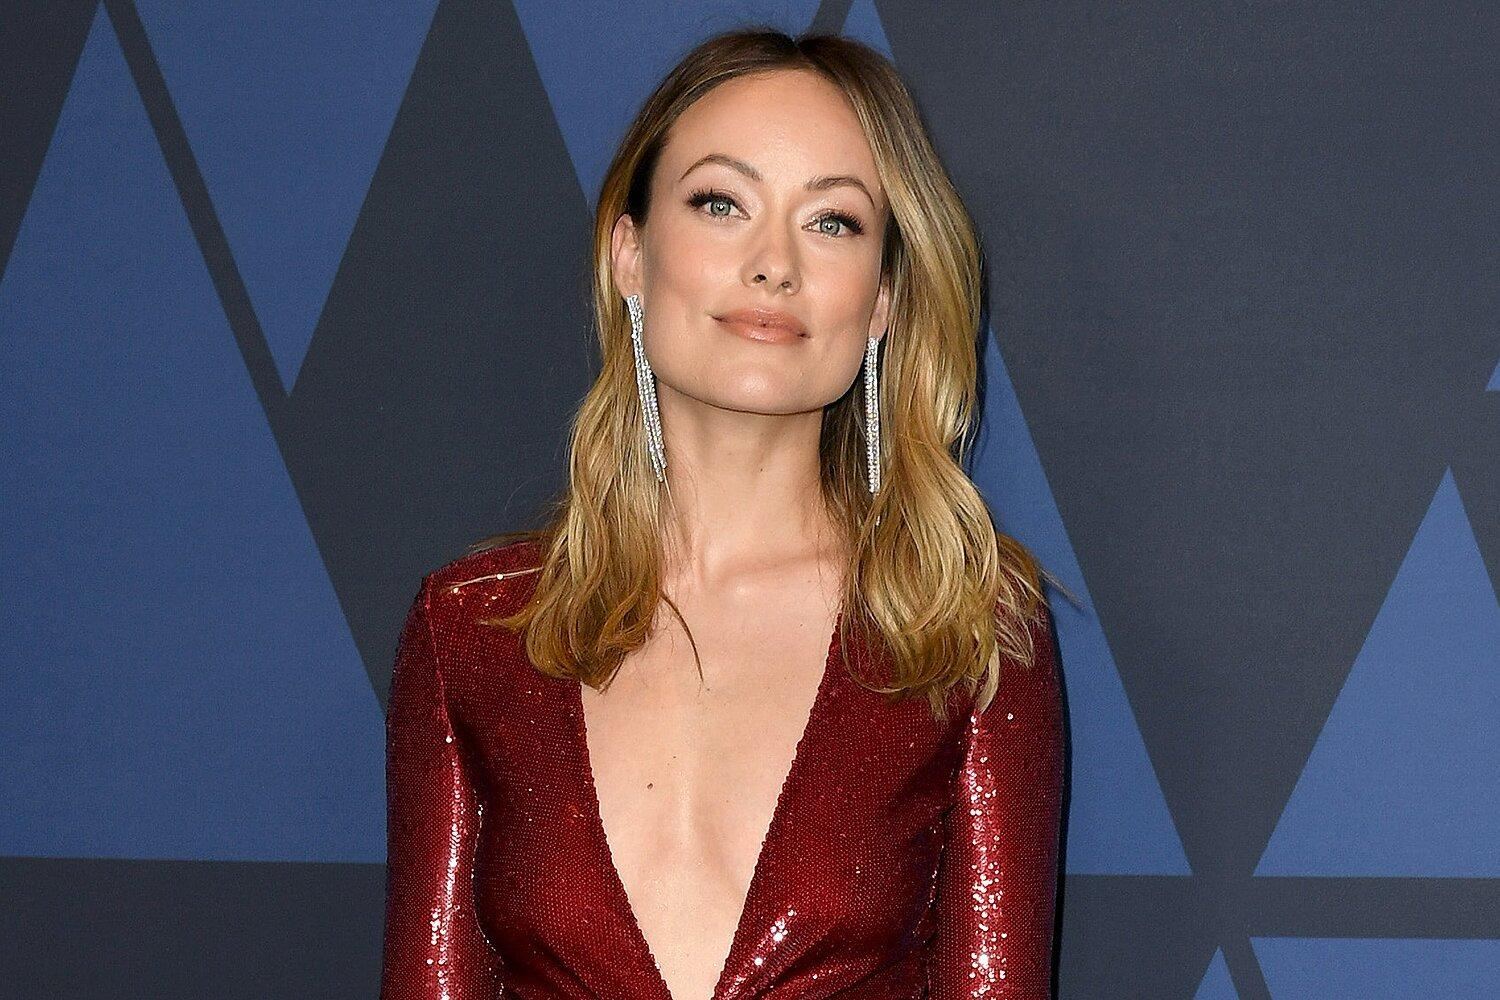 olivia-wilde-had-to-lie-to-friends-by-omission-for-weeks-about-netting-rumored-spiderwoman-gig